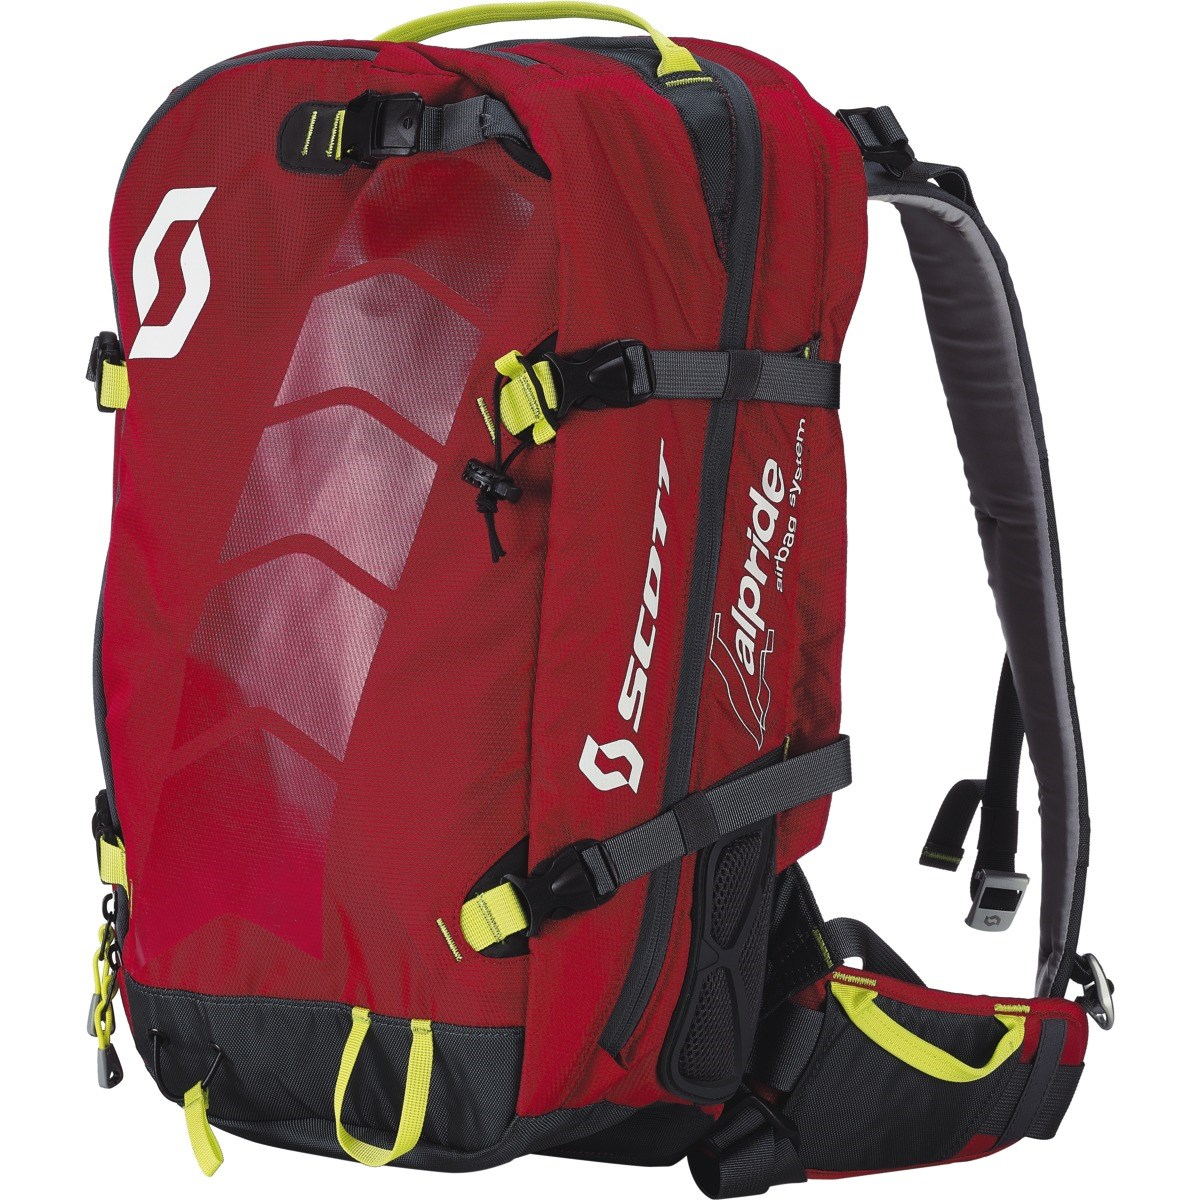 Scott AirFree Alpride 30 Avalanche Airbag System Red Grey £420.00 49683a447bec4